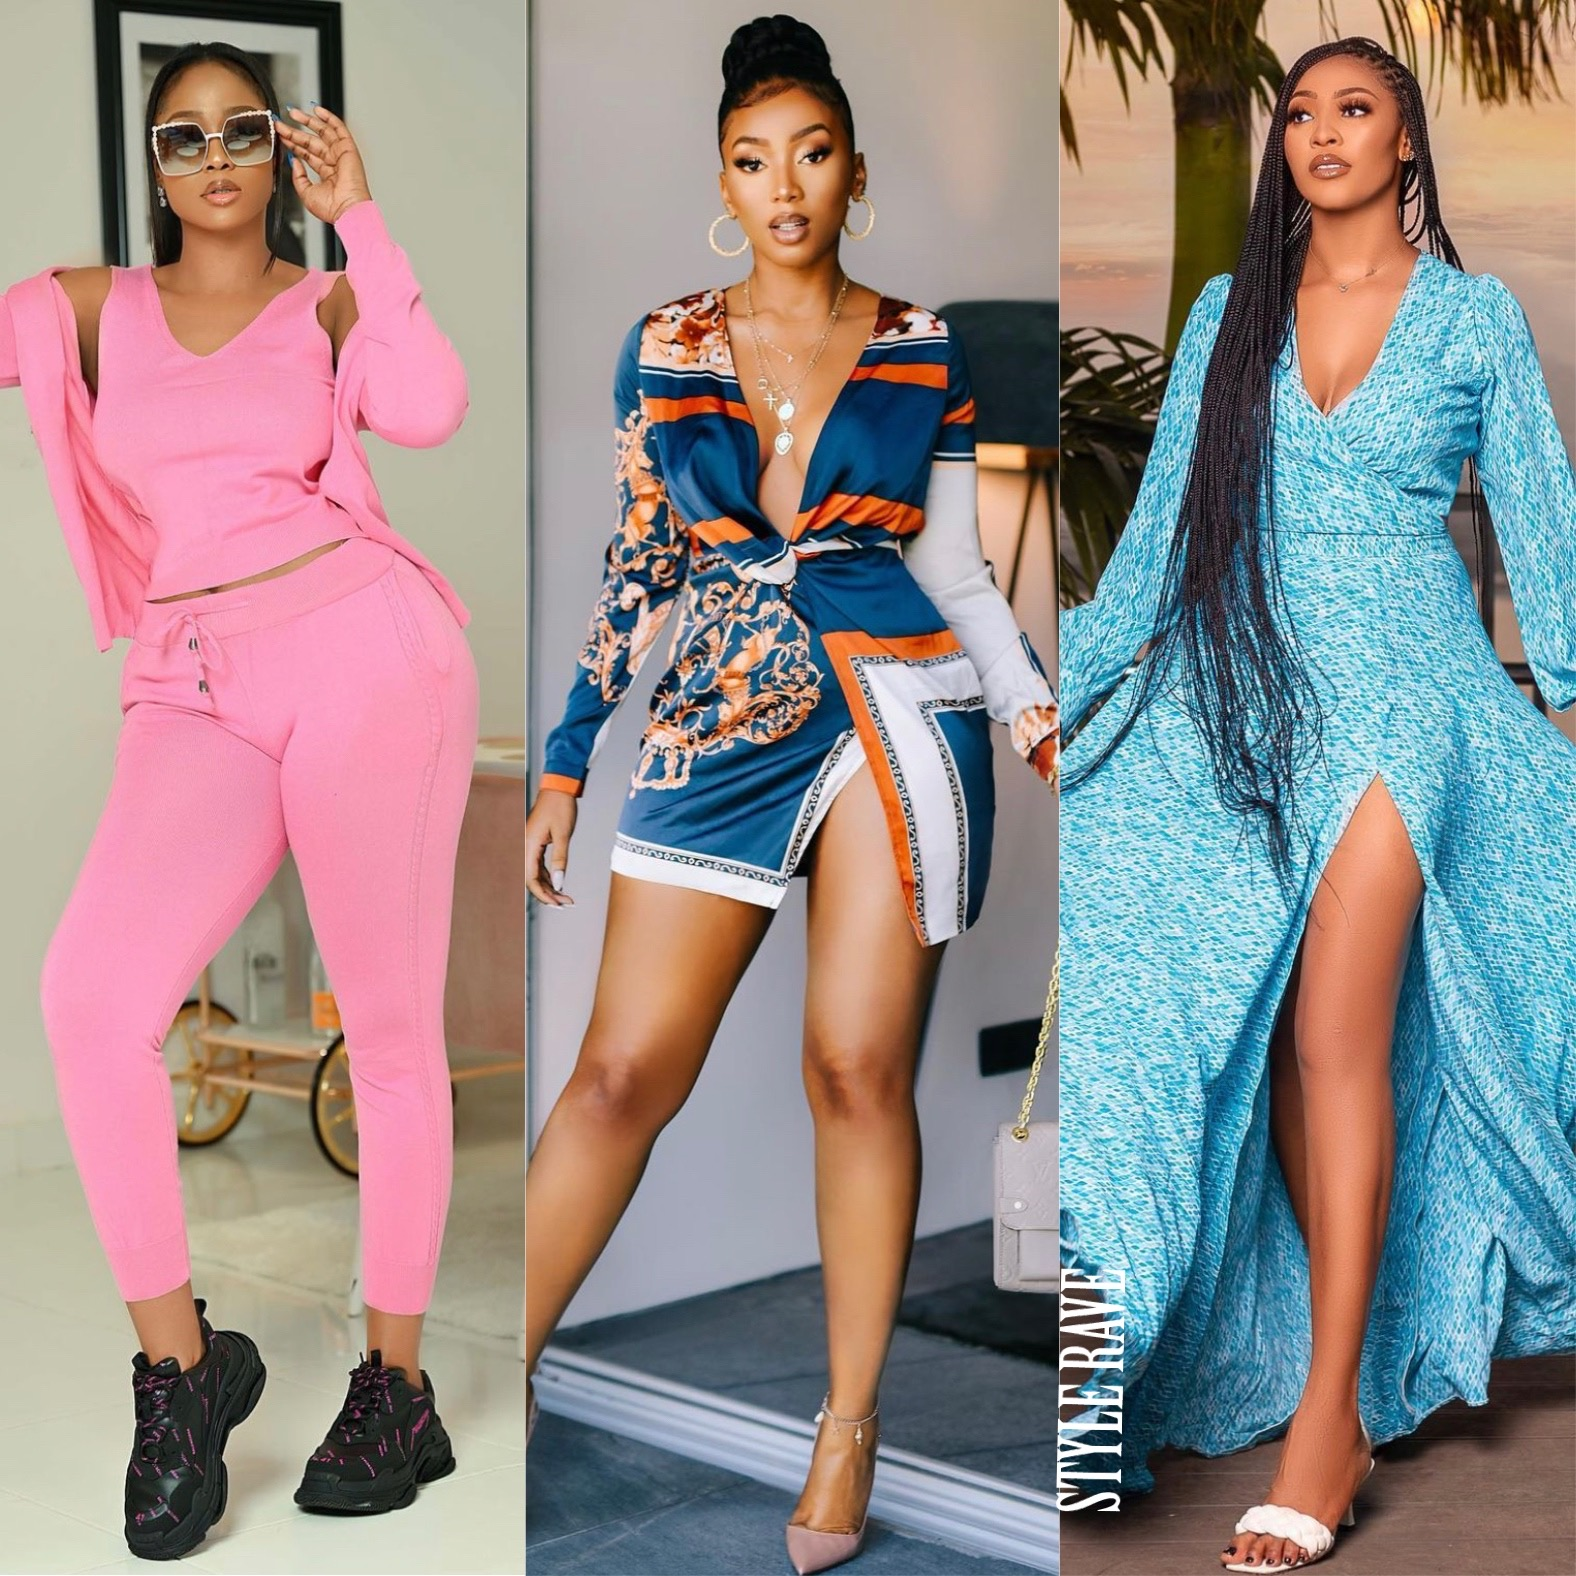 3-women-show-how-to-dress-up-for-a-date-night-at-home-outfit-ideas-in-2021